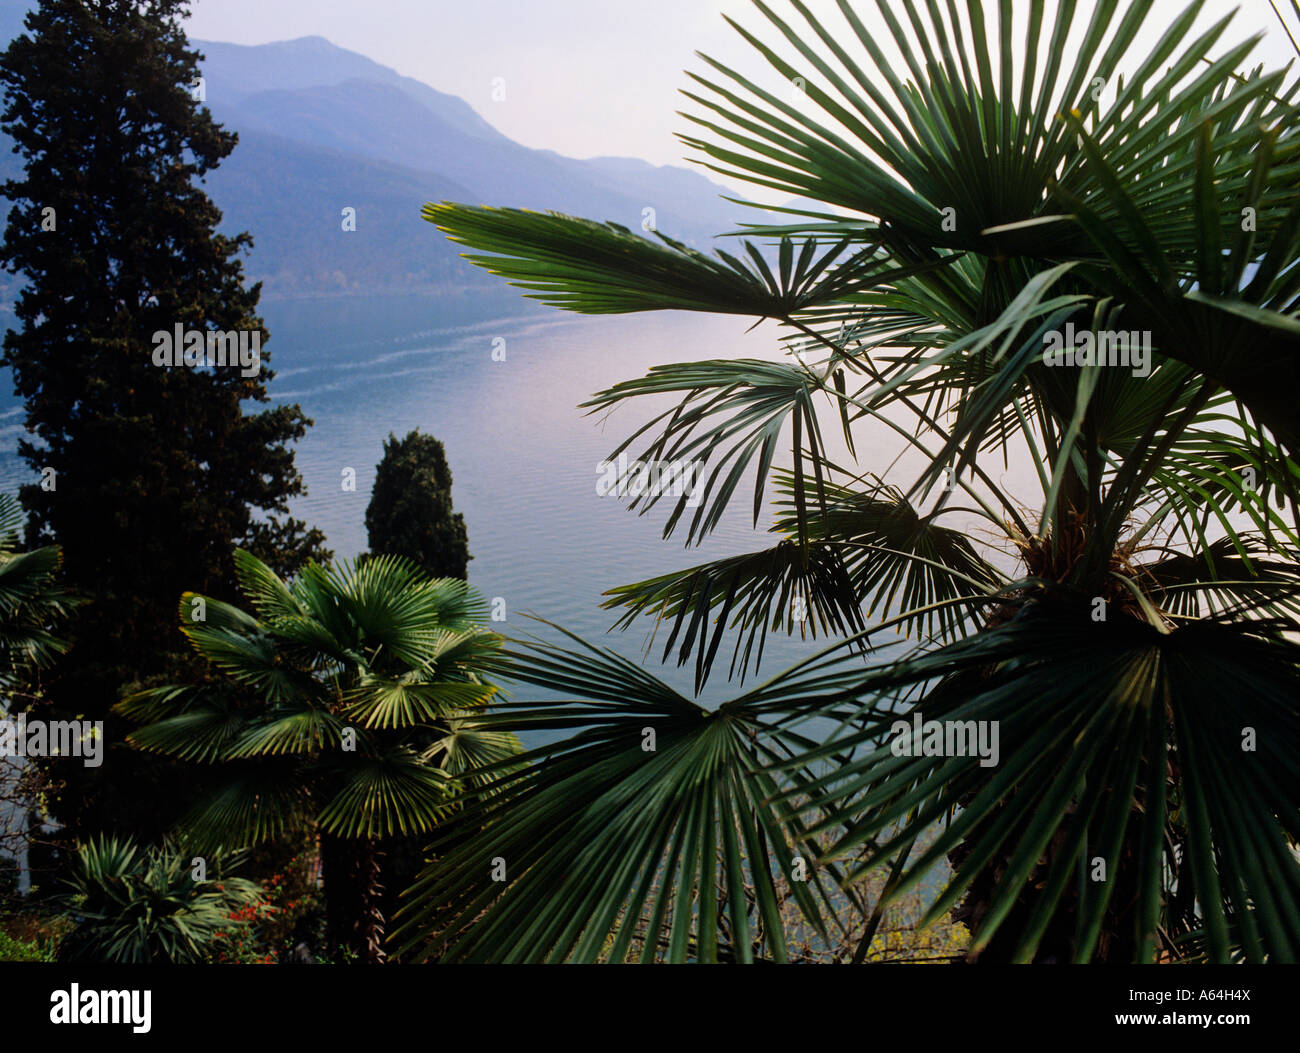 view from gardens of parco scherrer over lake lugano after rainfall at evening near village of morcote ticino switzerland - Stock Image